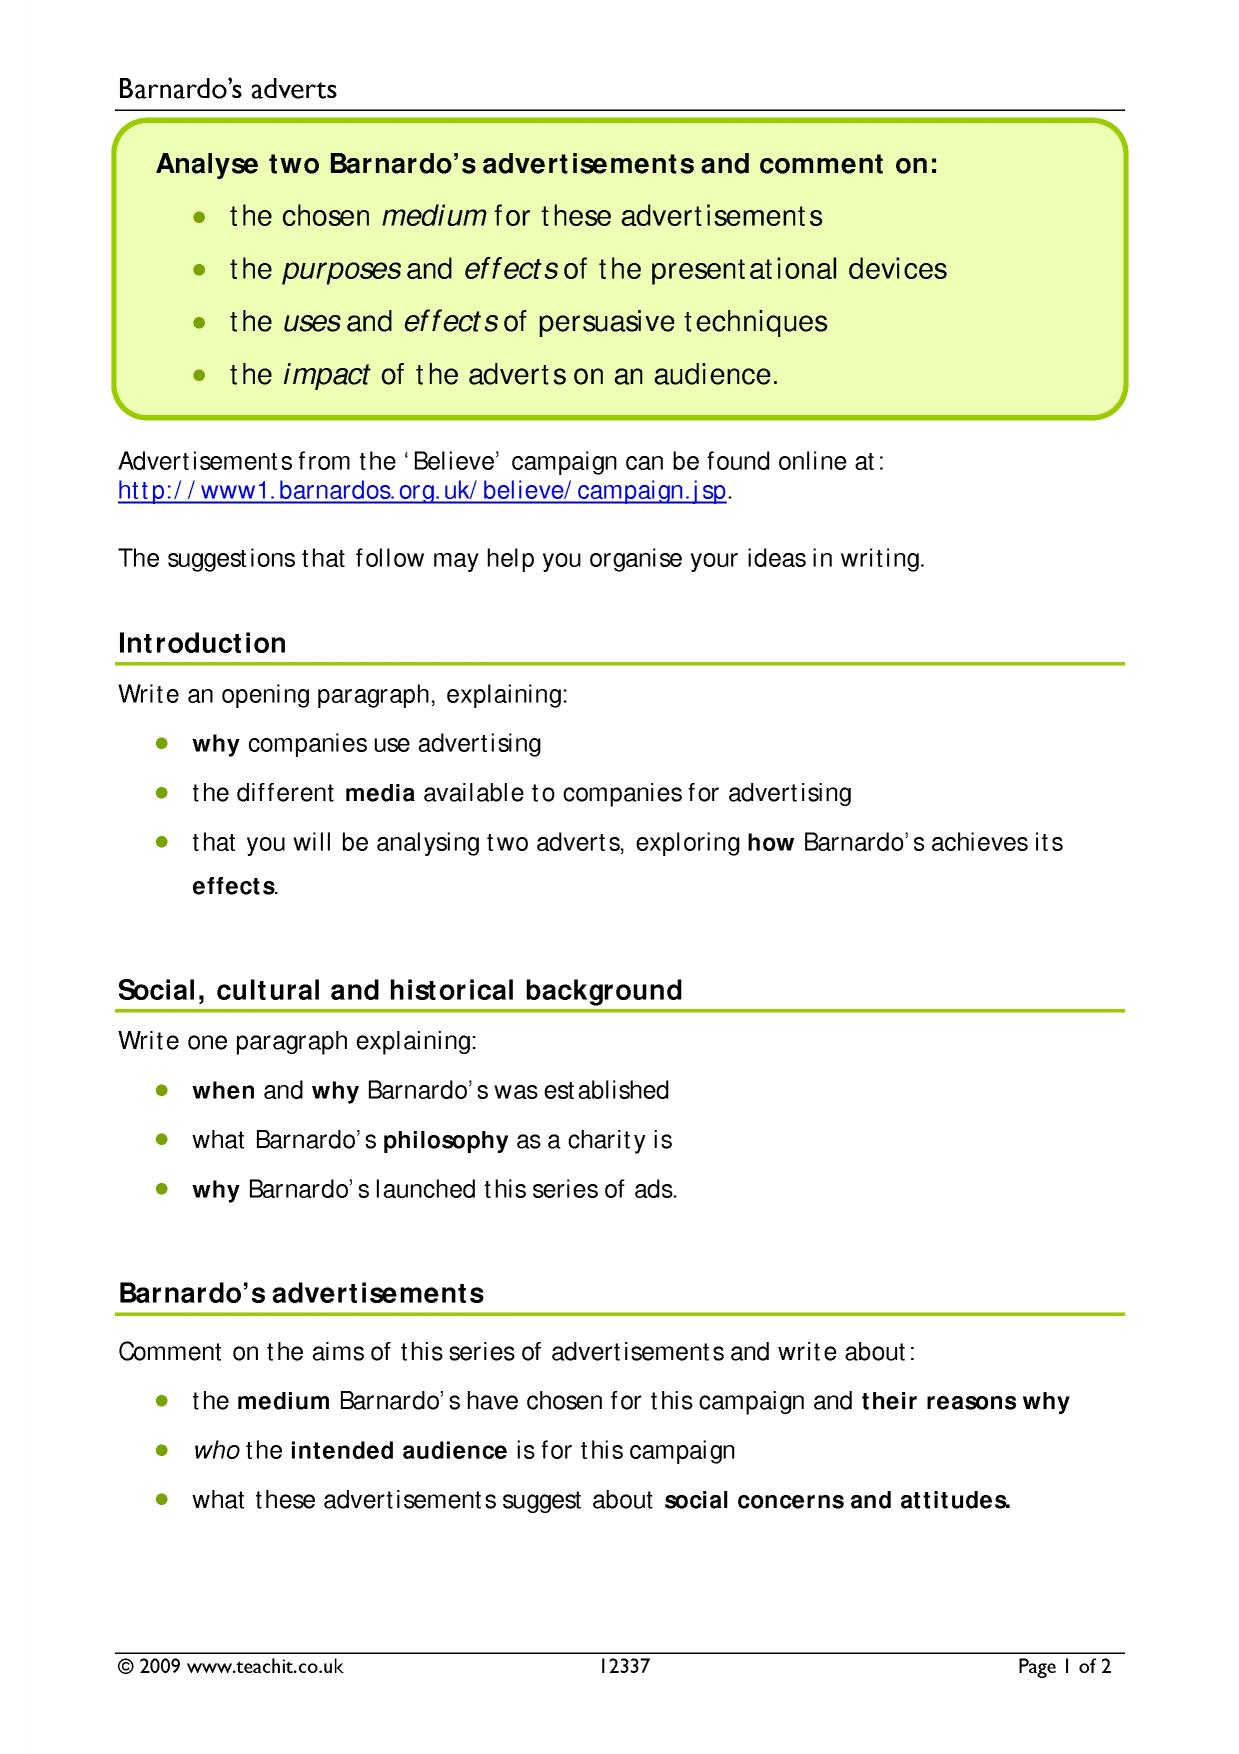 plymouth coursework cover sheet Roehampton coursework cover sheet - duration: 1:17 кирилл.